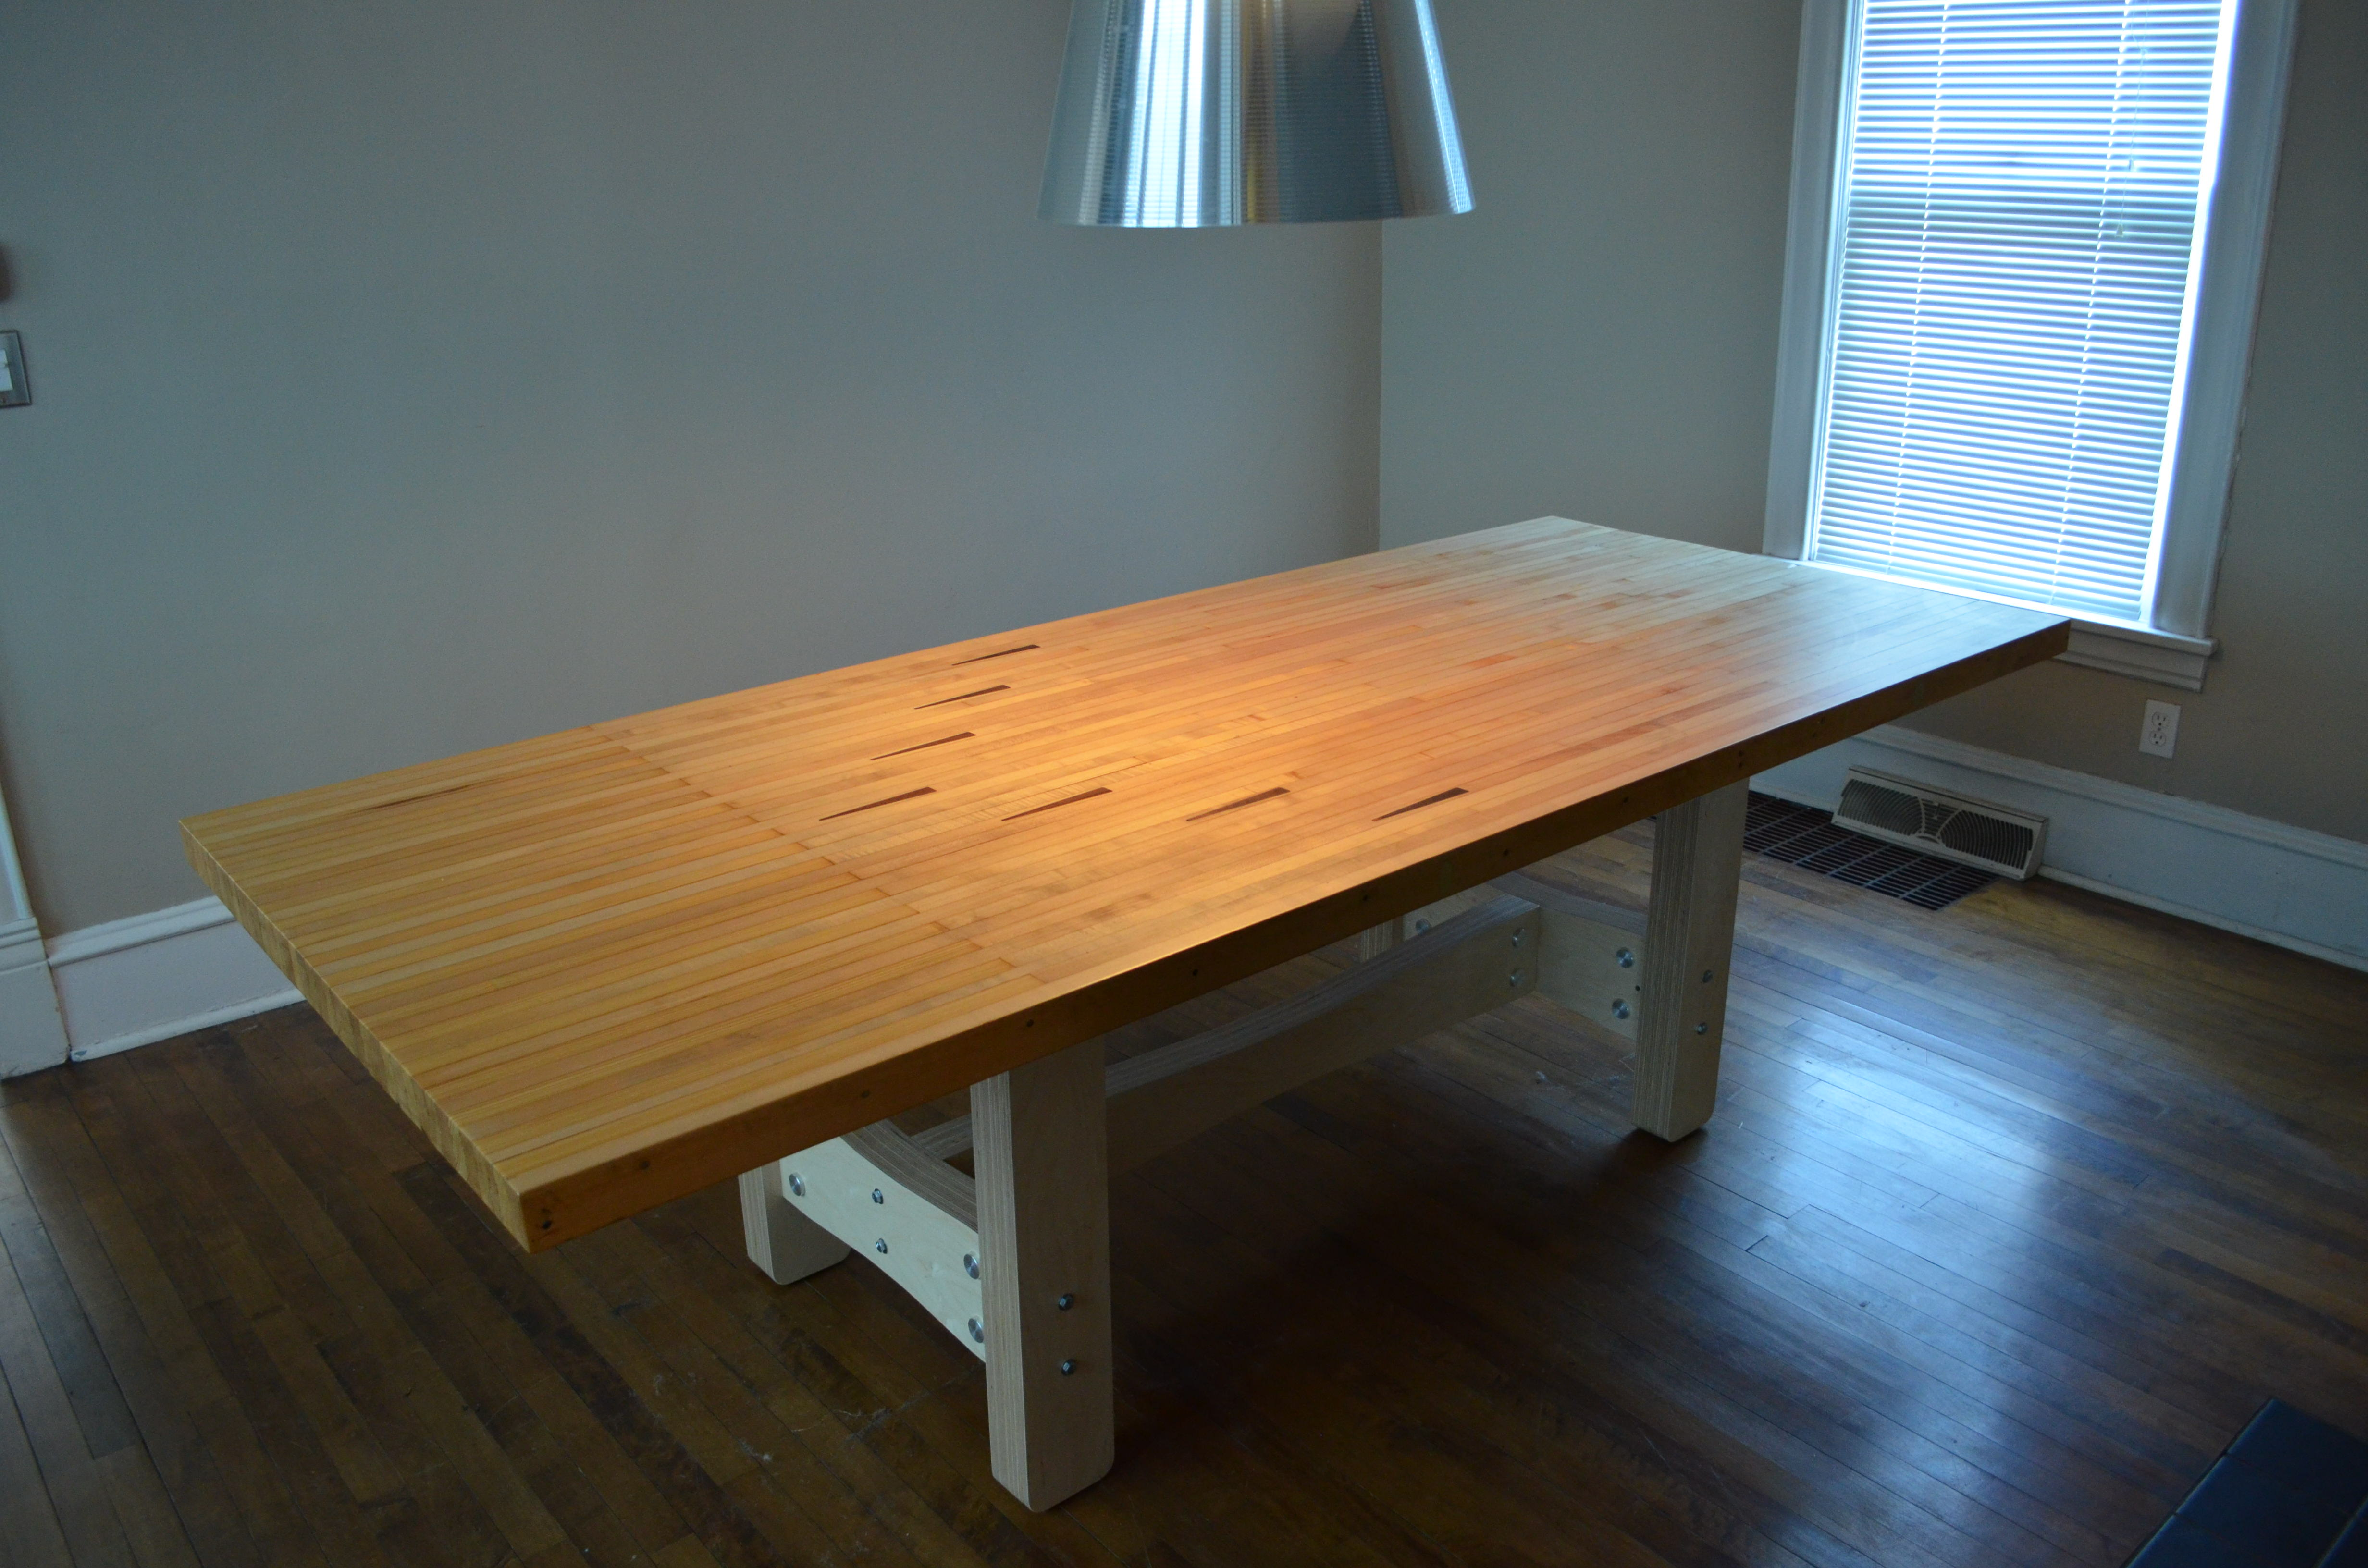 Picture of Reclaimed Bowling Lane Table